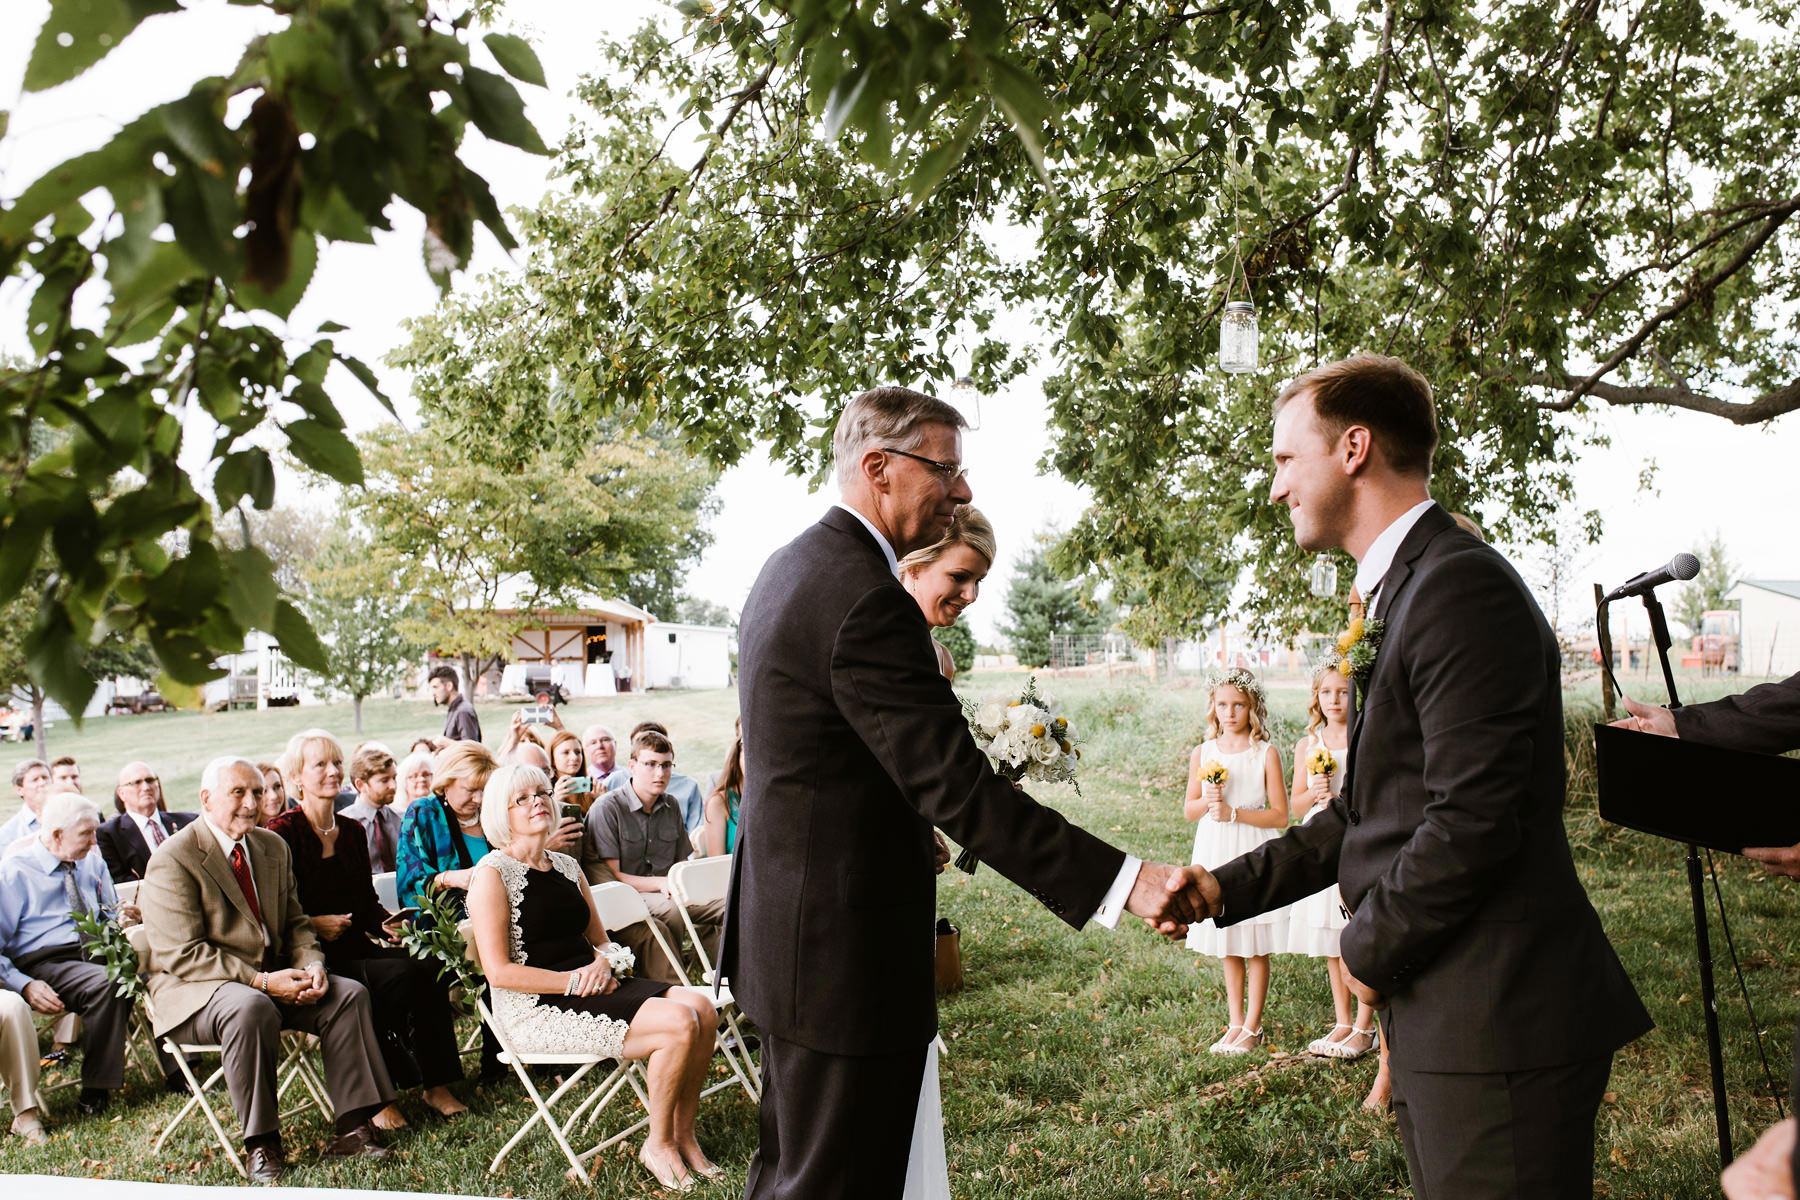 88_Alldredge Orchards Outdoor Wedding Kansas City, Missouri_Kindling Wedding Photography.JPG